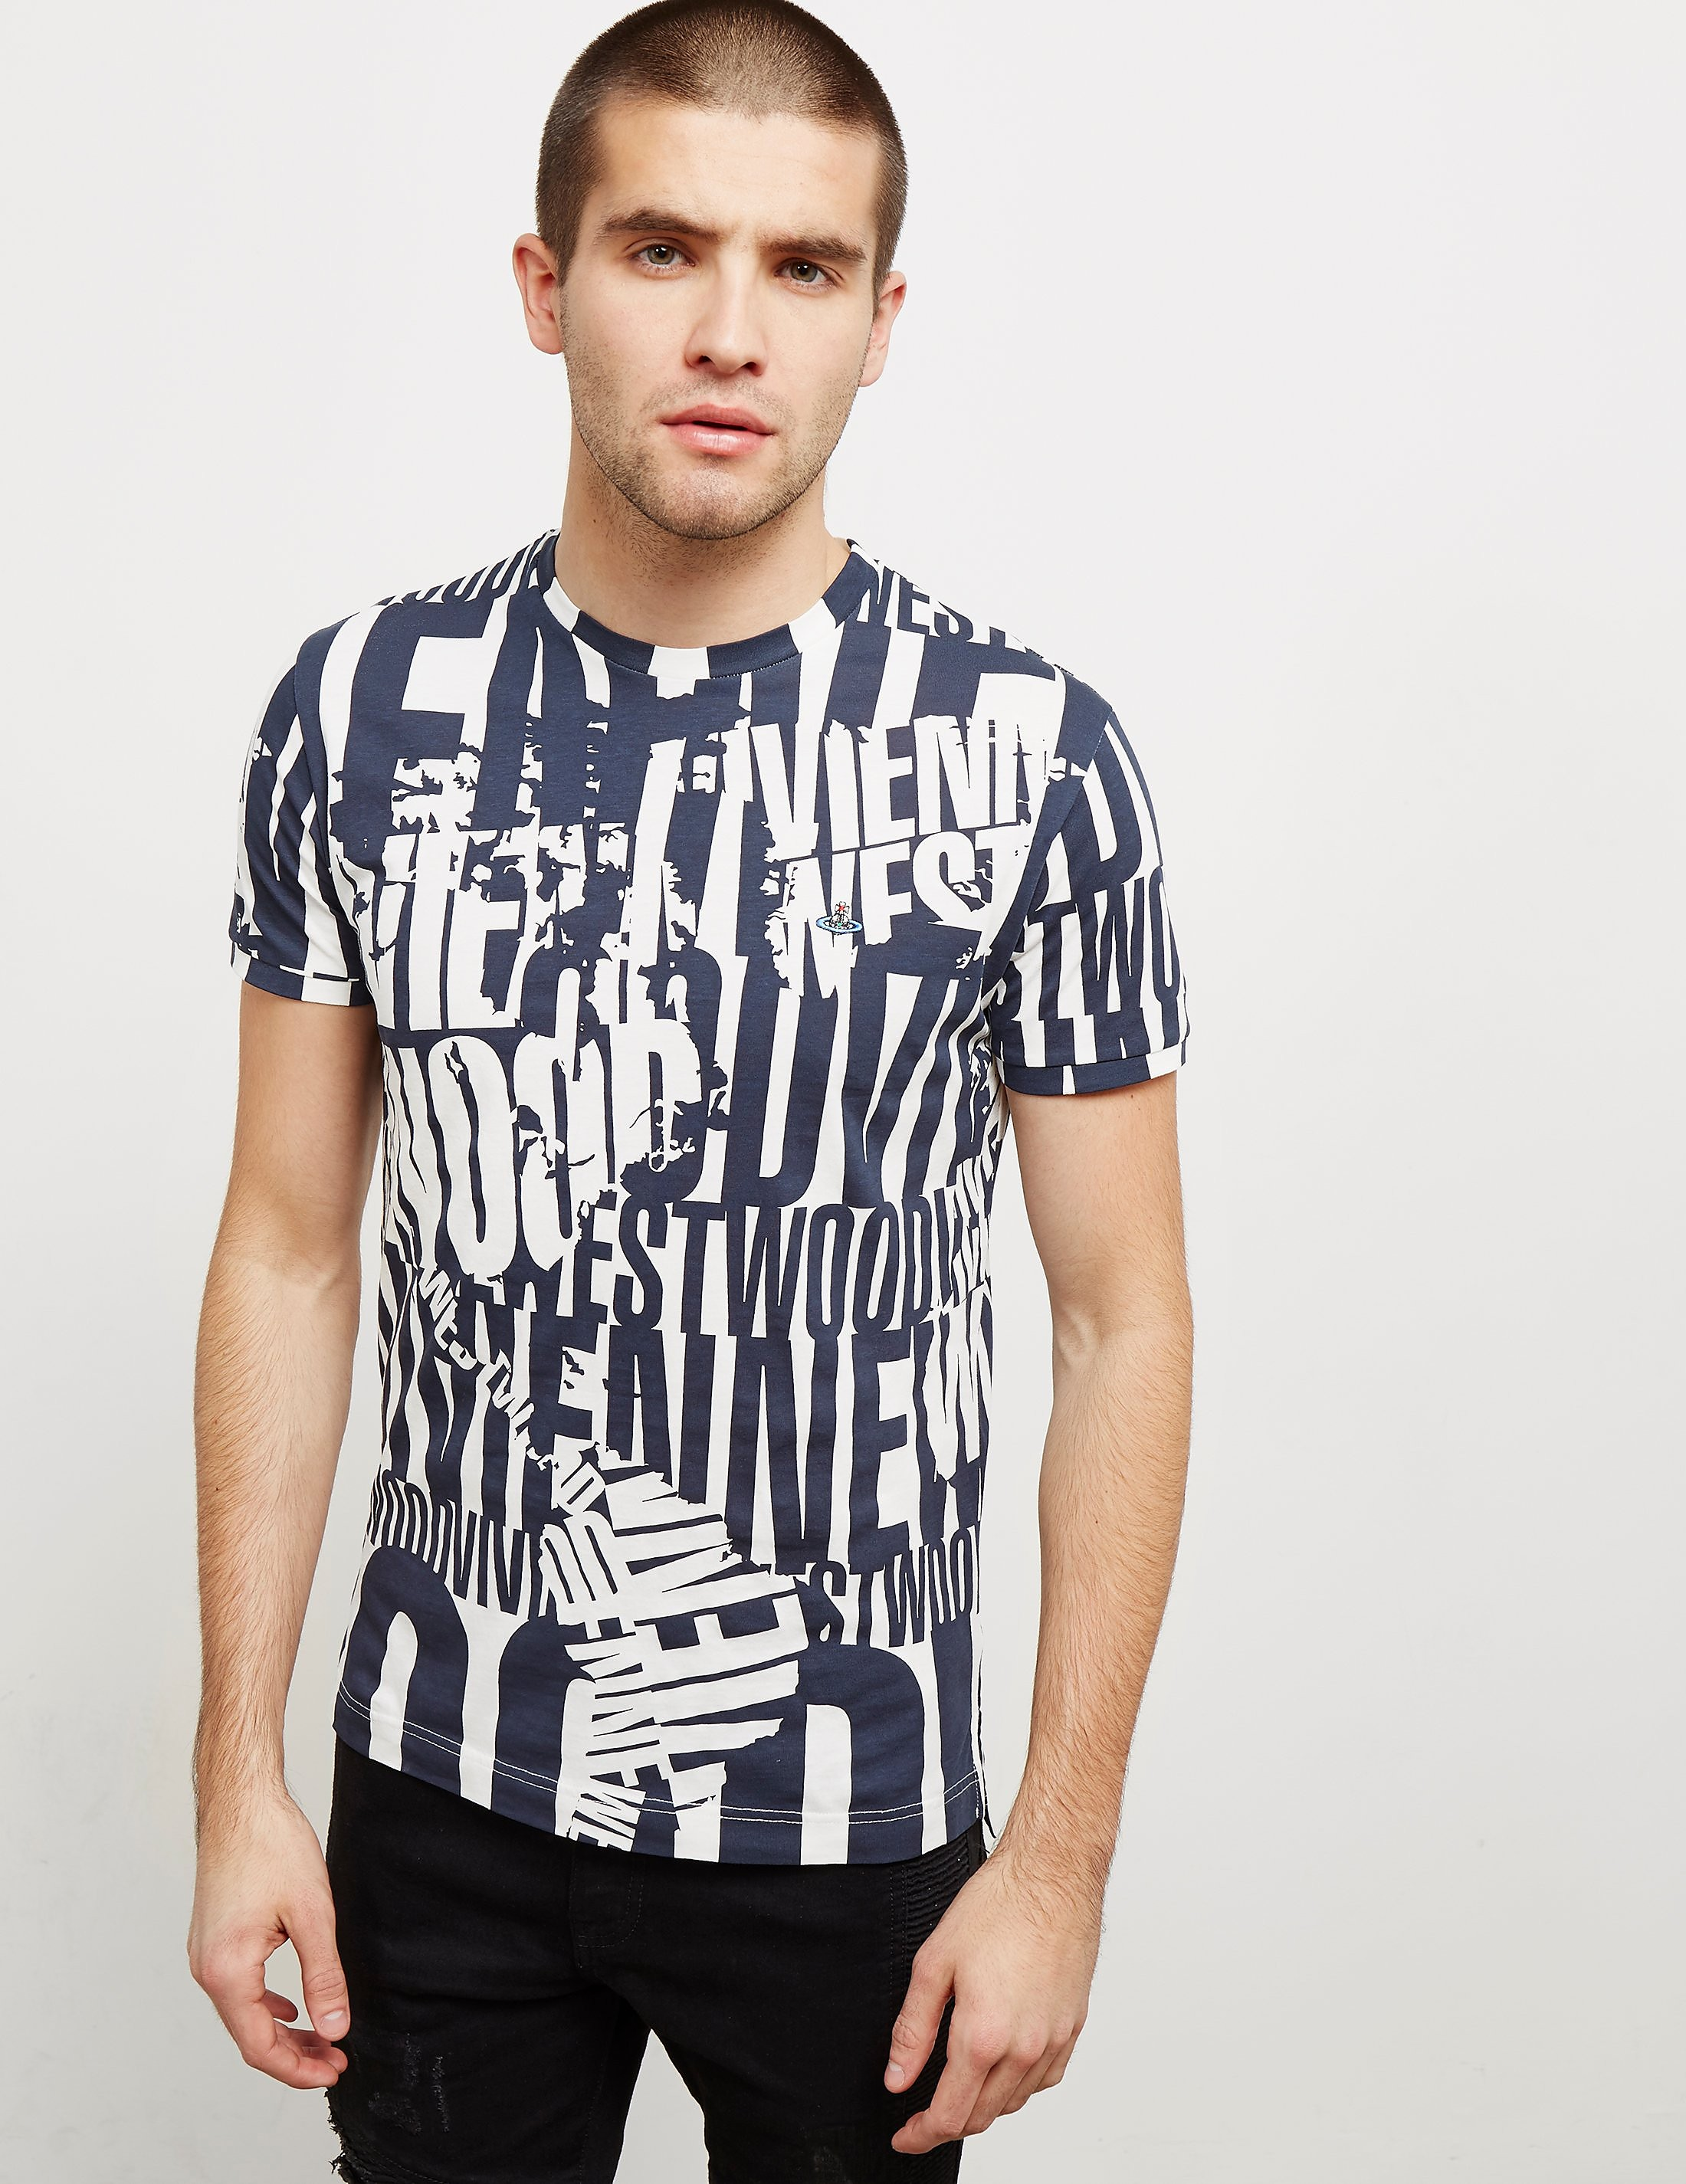 Vivienne Westwood Text Short Sleeve T-Shirt - Online Exclusive